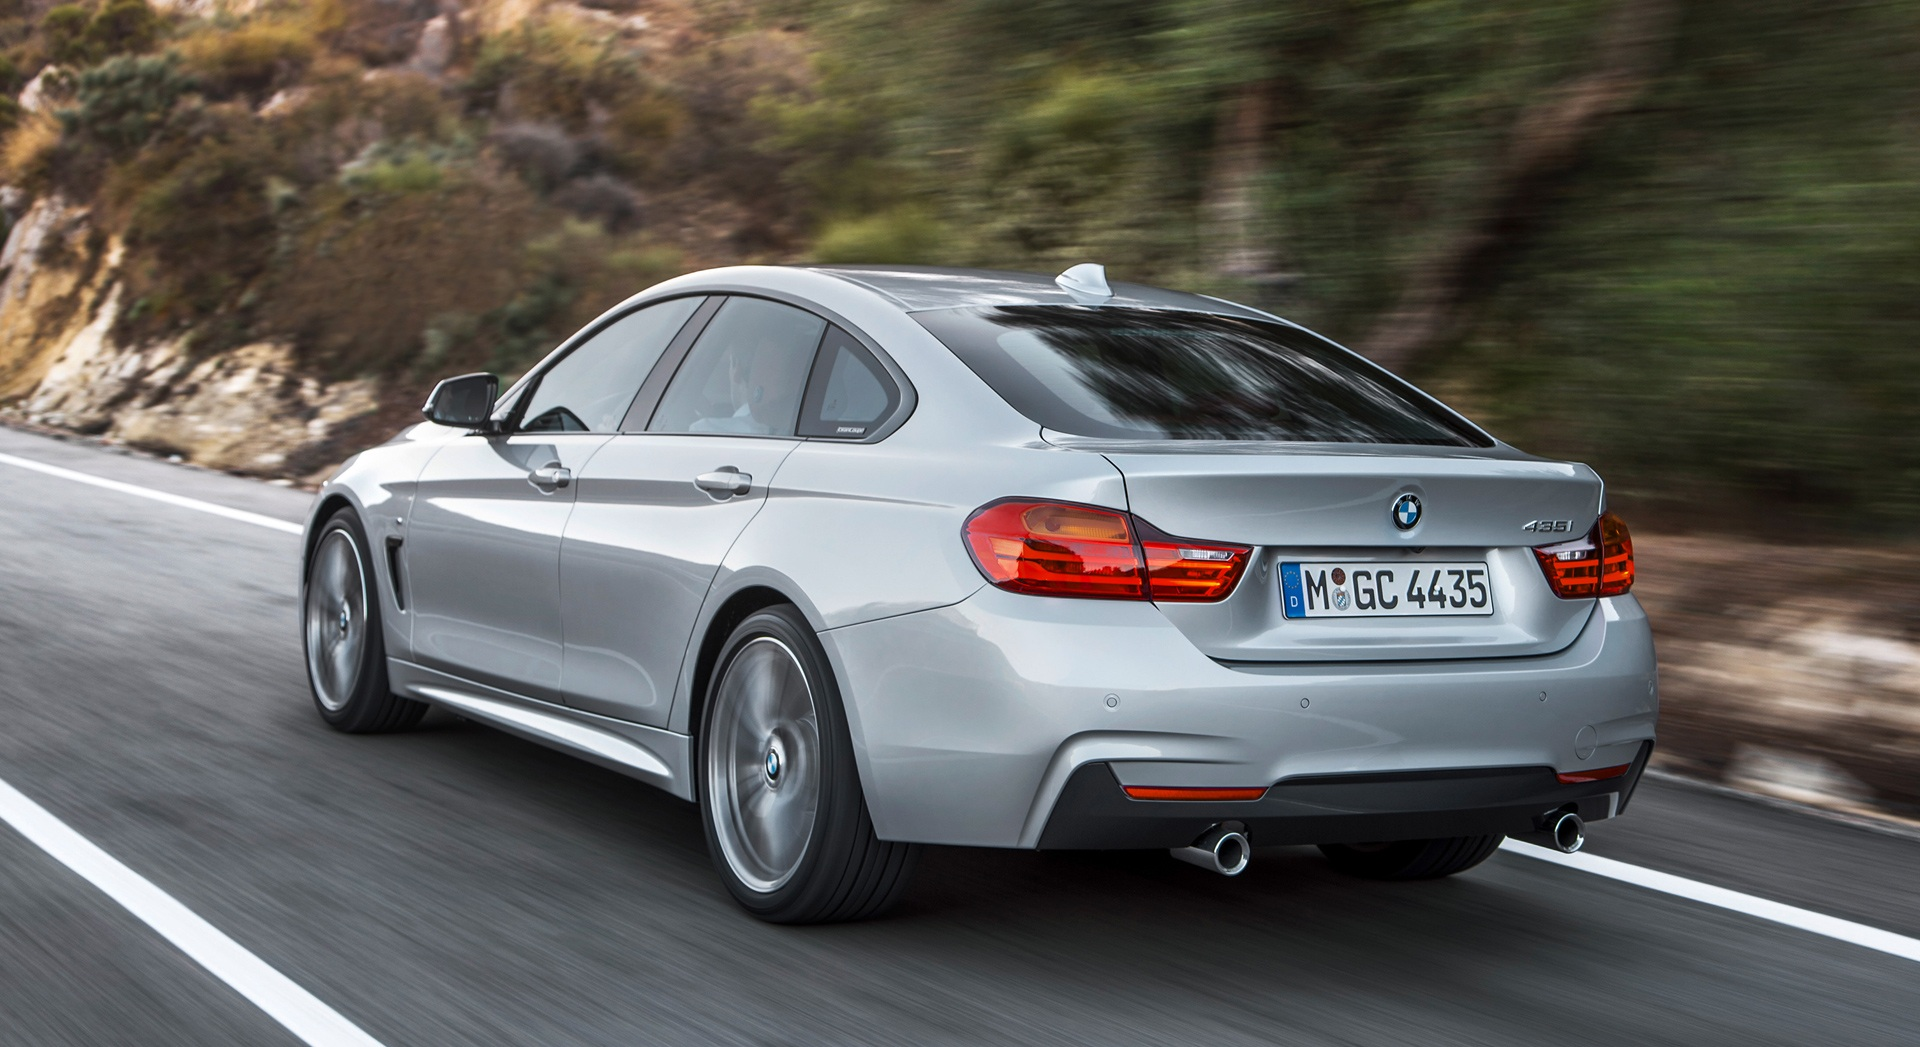 2015 Bmw 4 Series Gran Coupe Road View (View 11 of 11)